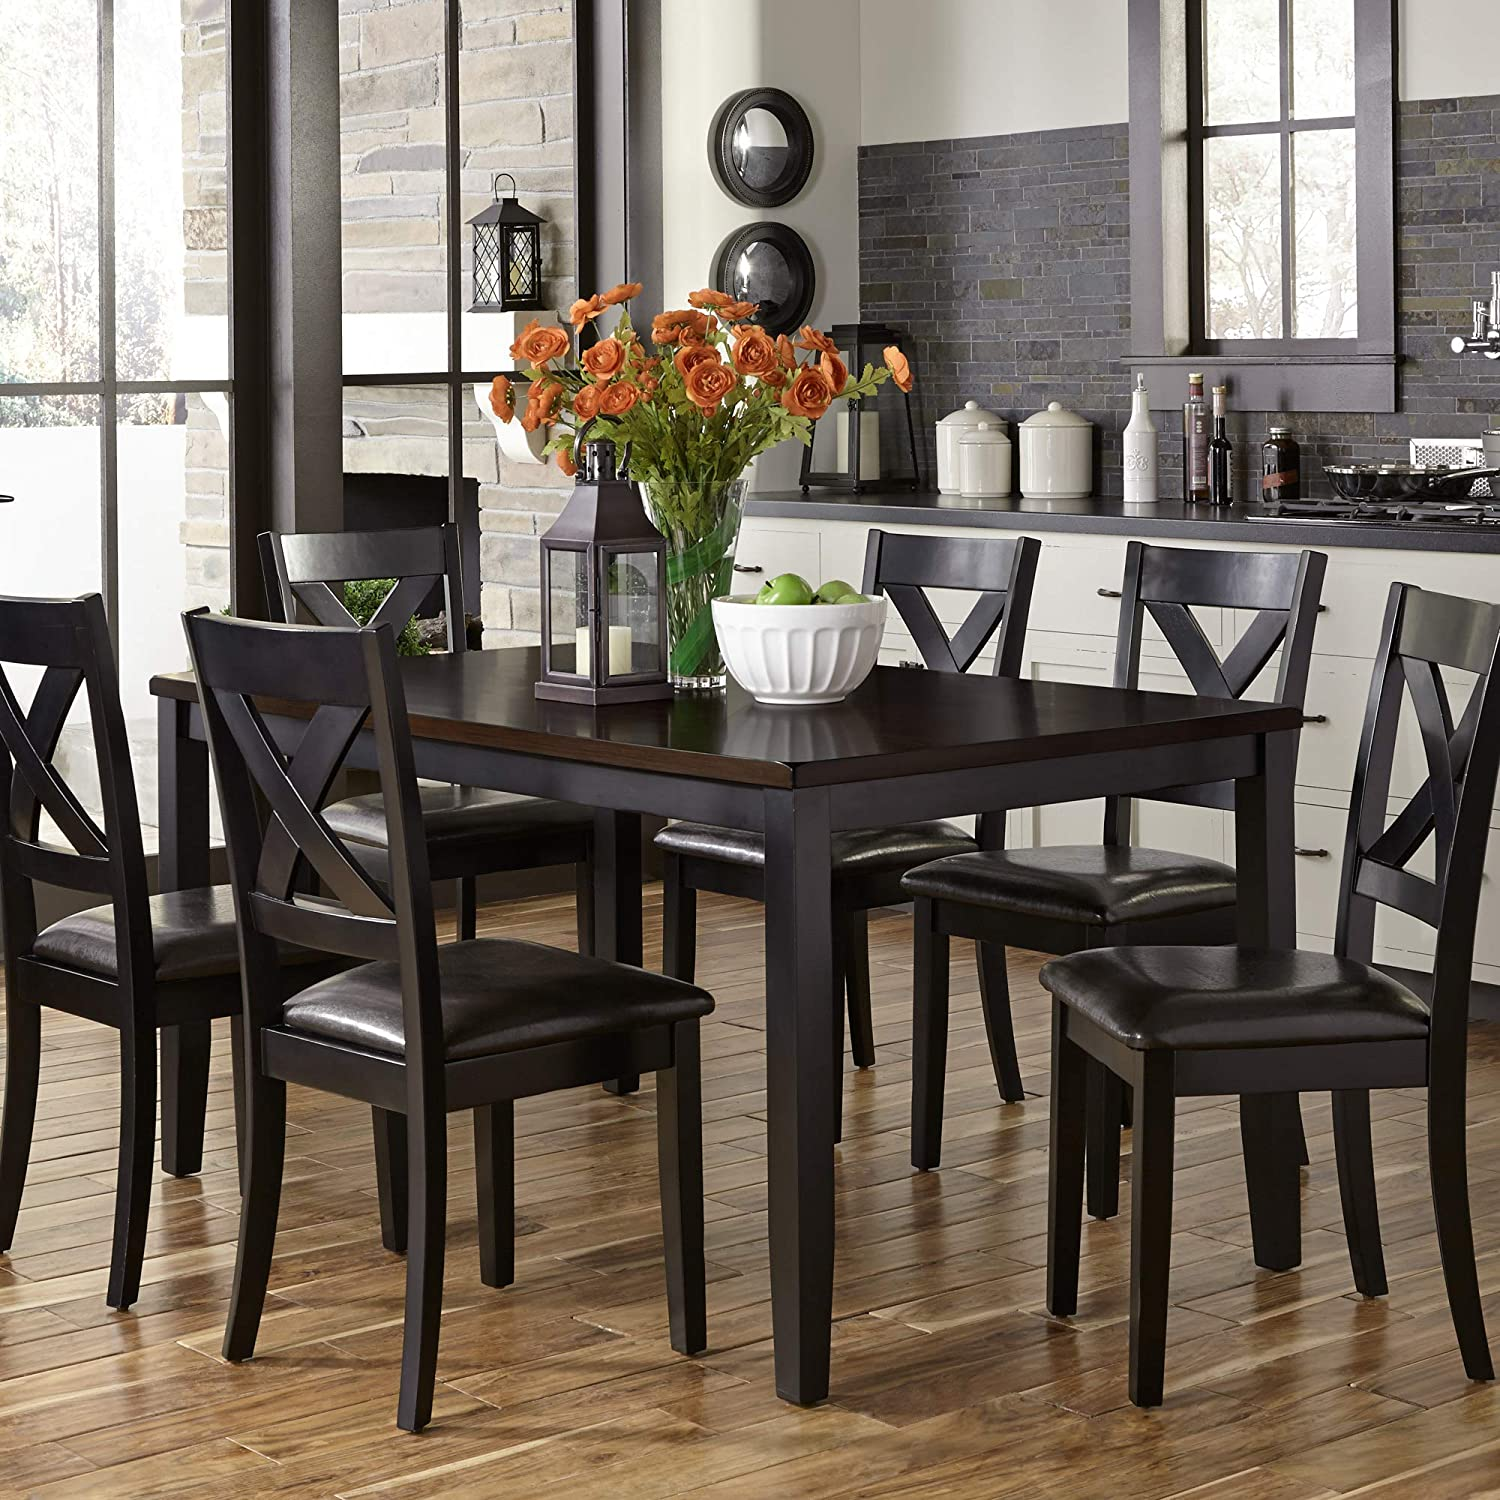 Liberty Furniture INDUSTRIES 464-CD-7RLS Thornton II 7 Piece Rectangular Table Set, W36 x D60 x H30